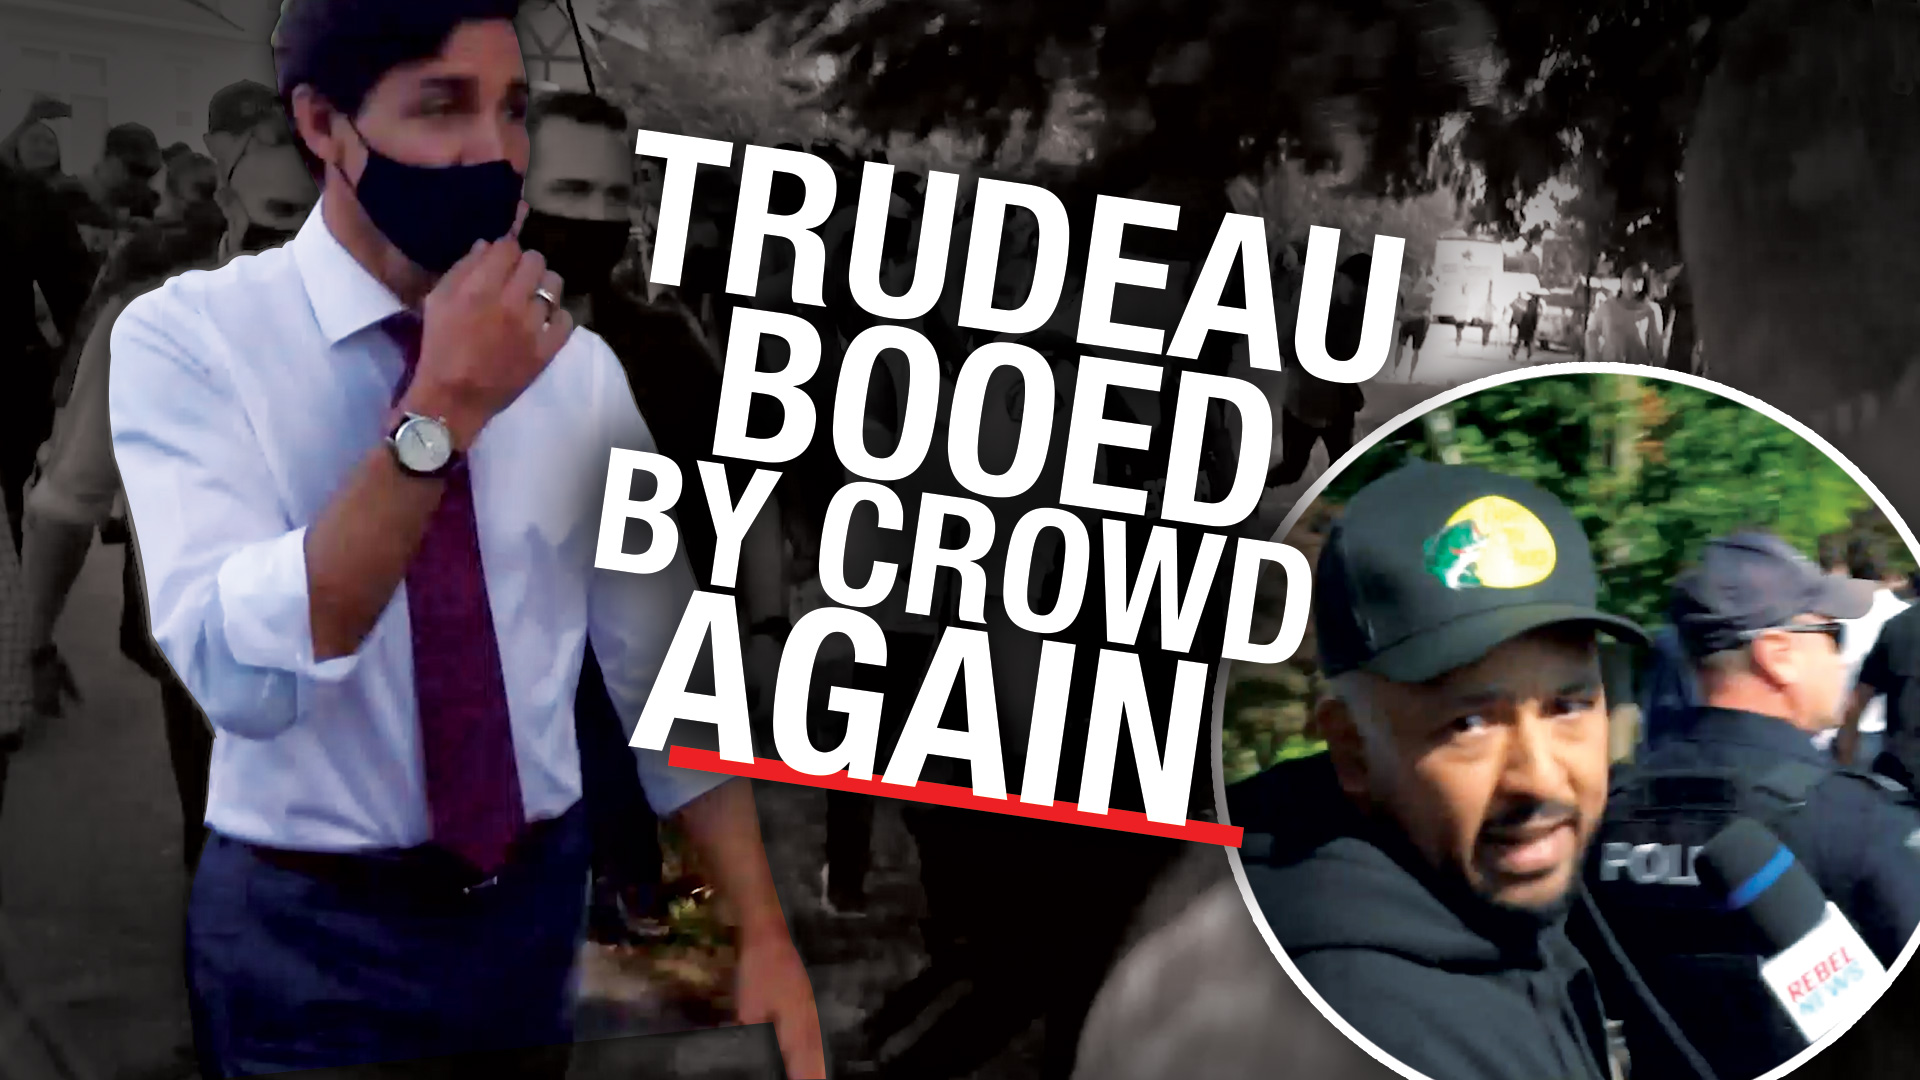 REPORT: Locals chase Prime Minister Trudeau out of British Columbia event